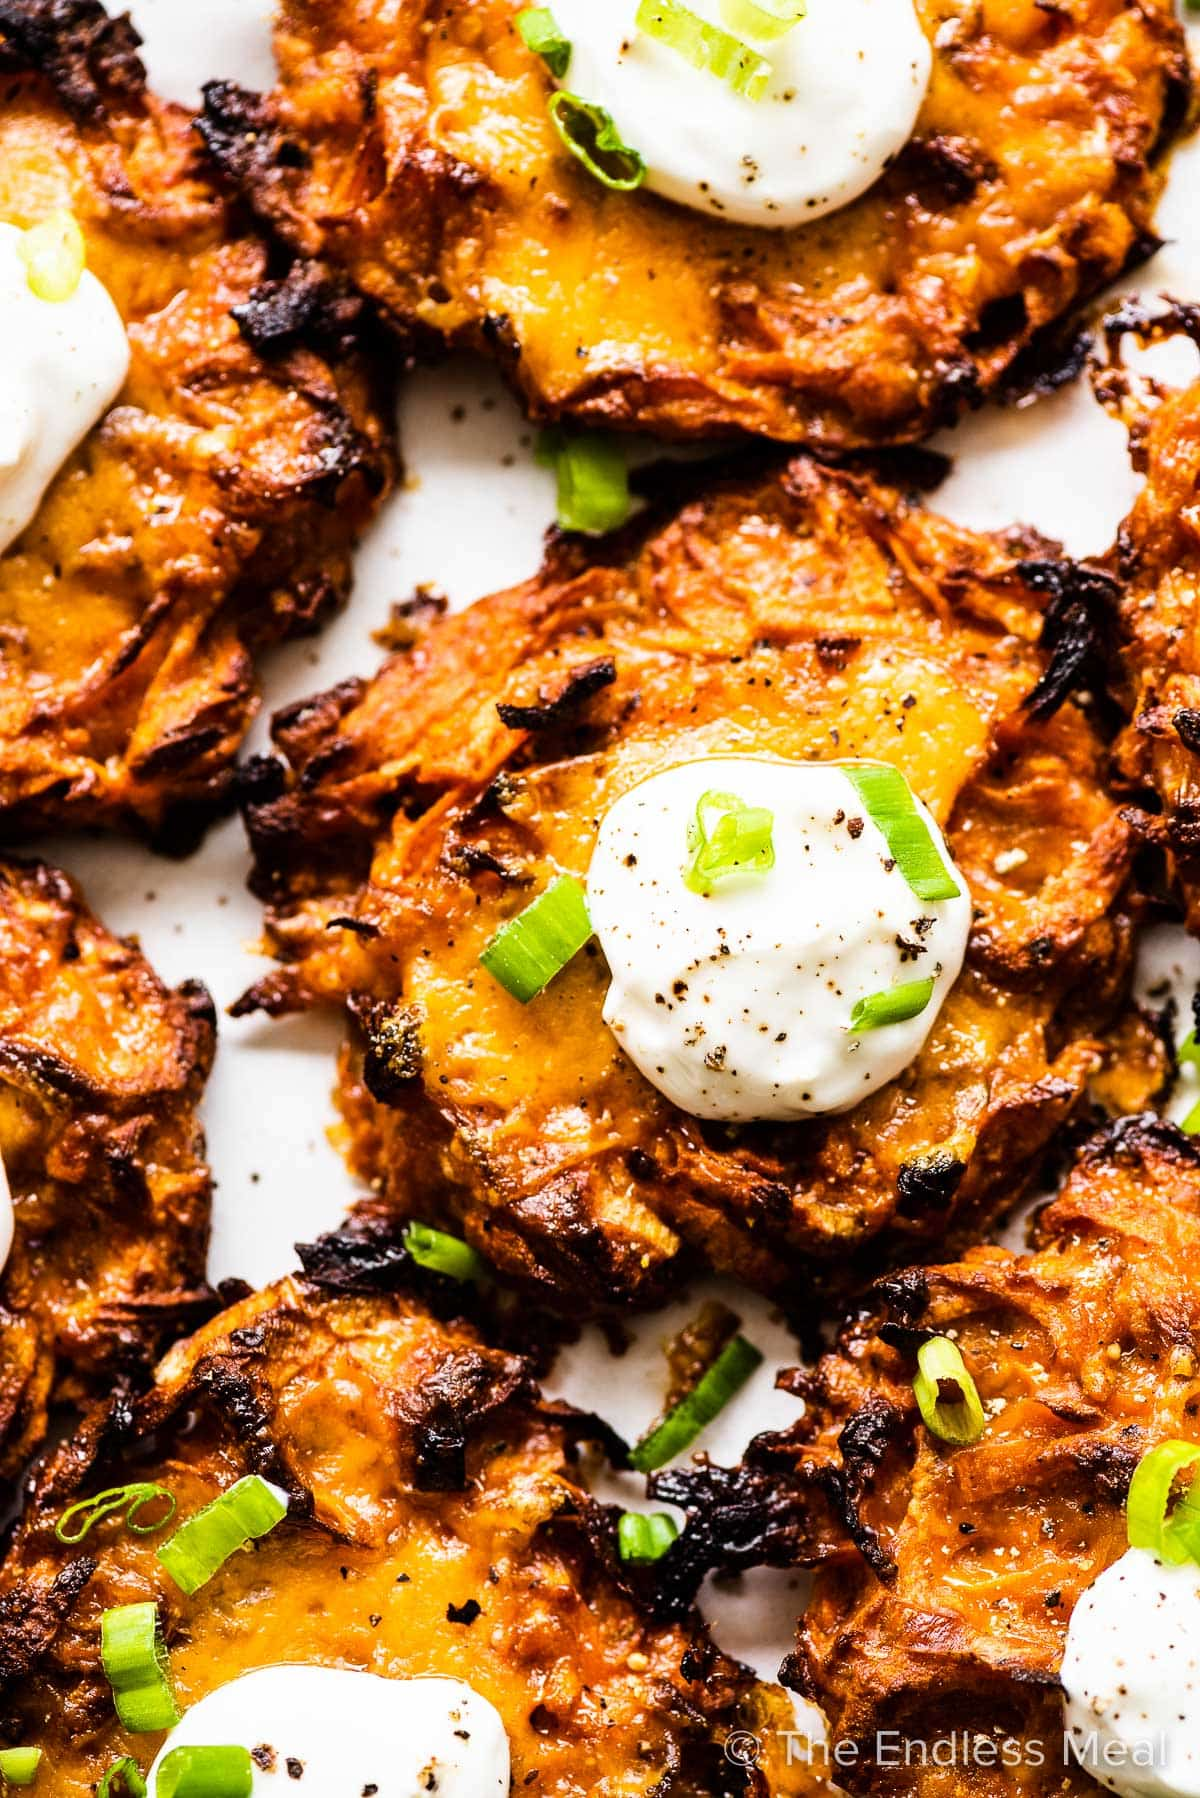 A close up of a sweet potato latke with sour cream on top.